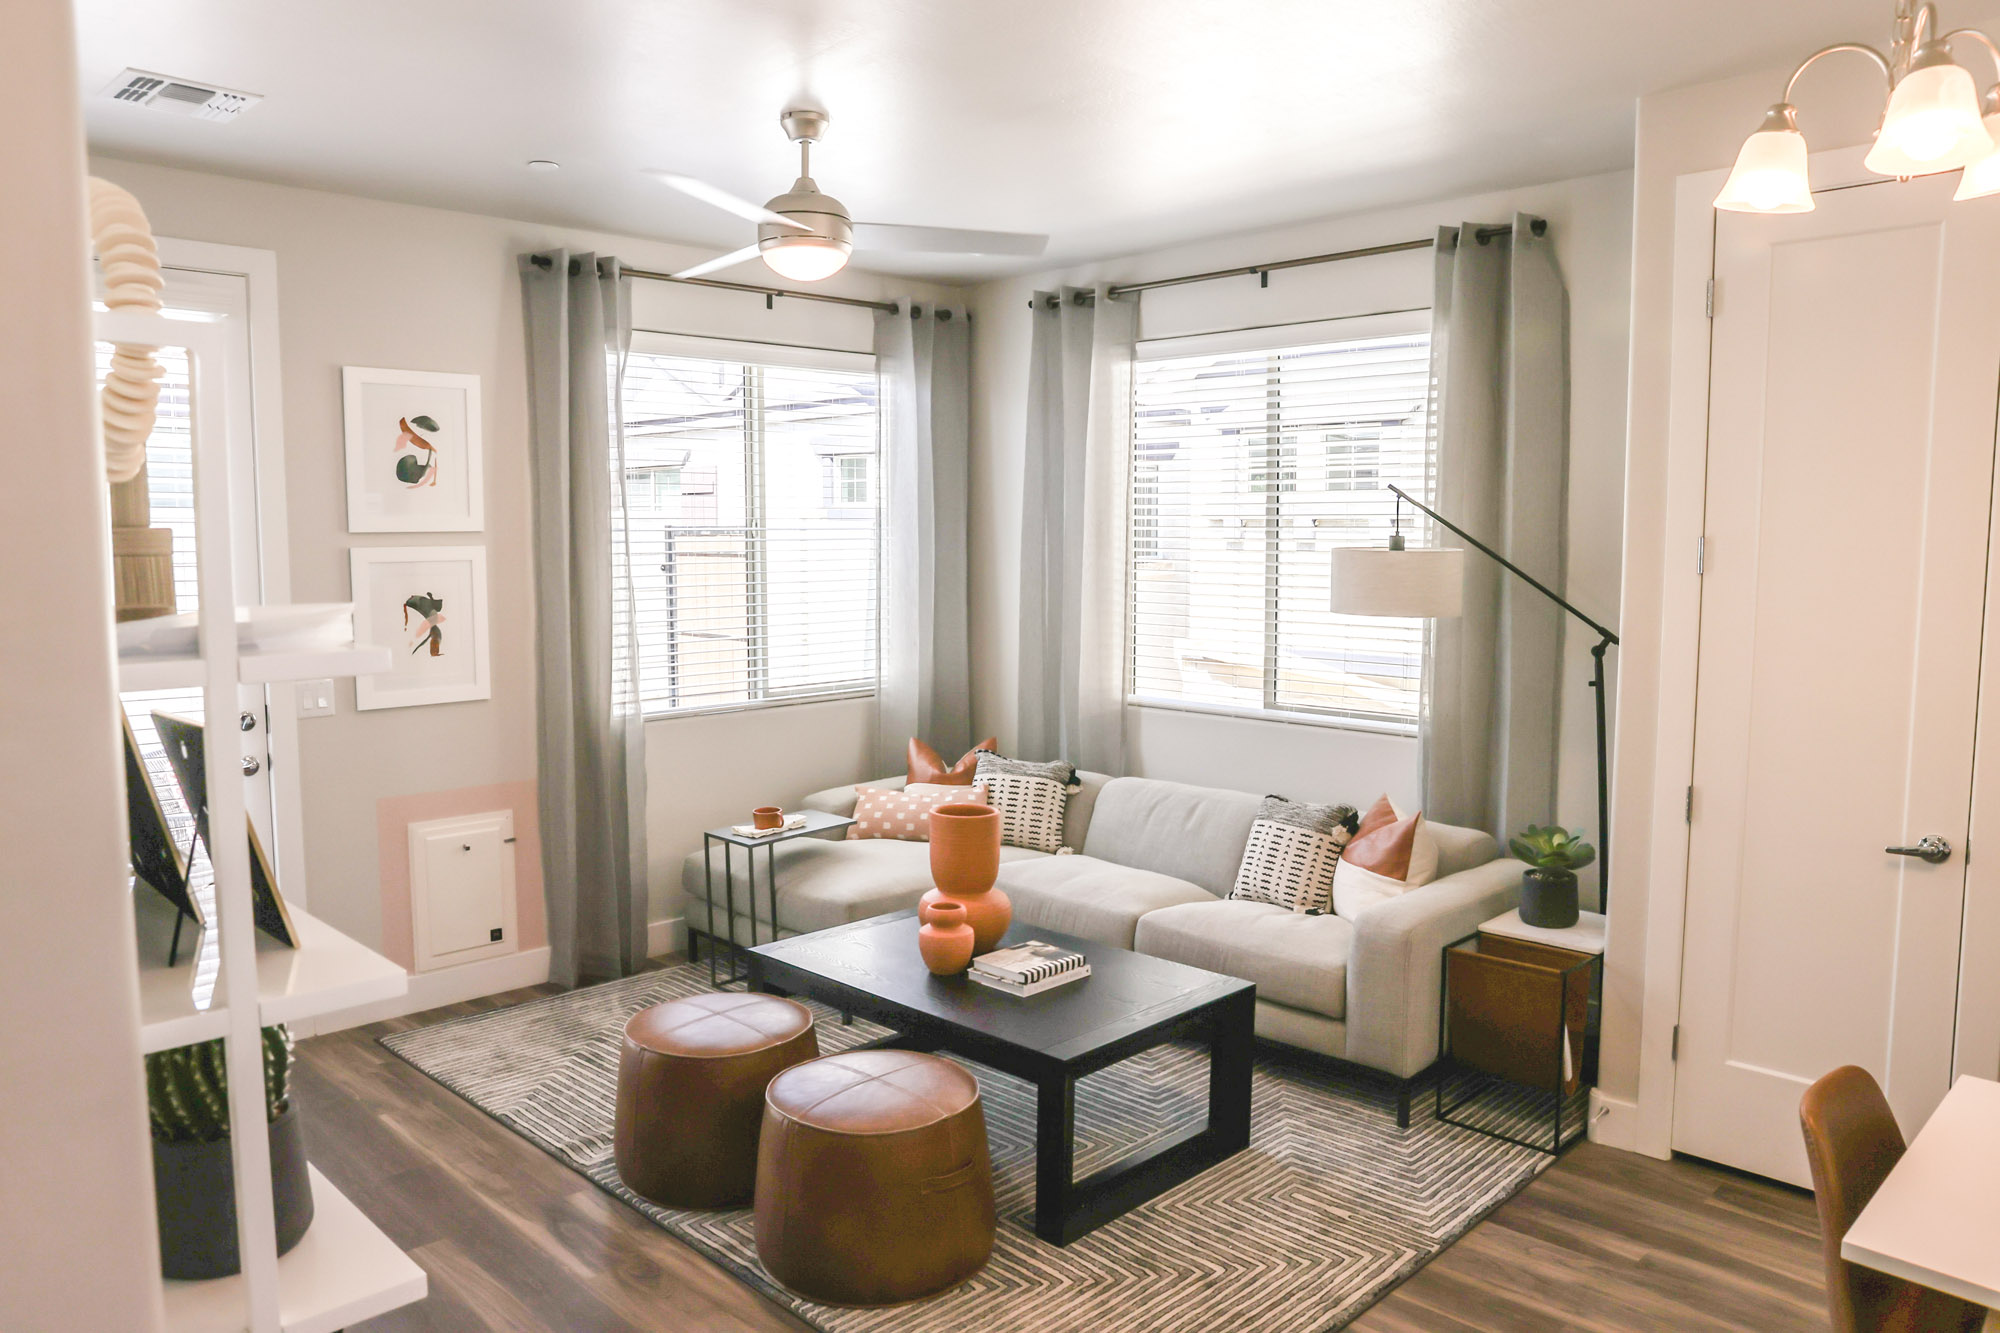 Simplified Rent Home Living at Village at Harvard Crossing Apartments in Goodyear, AZ